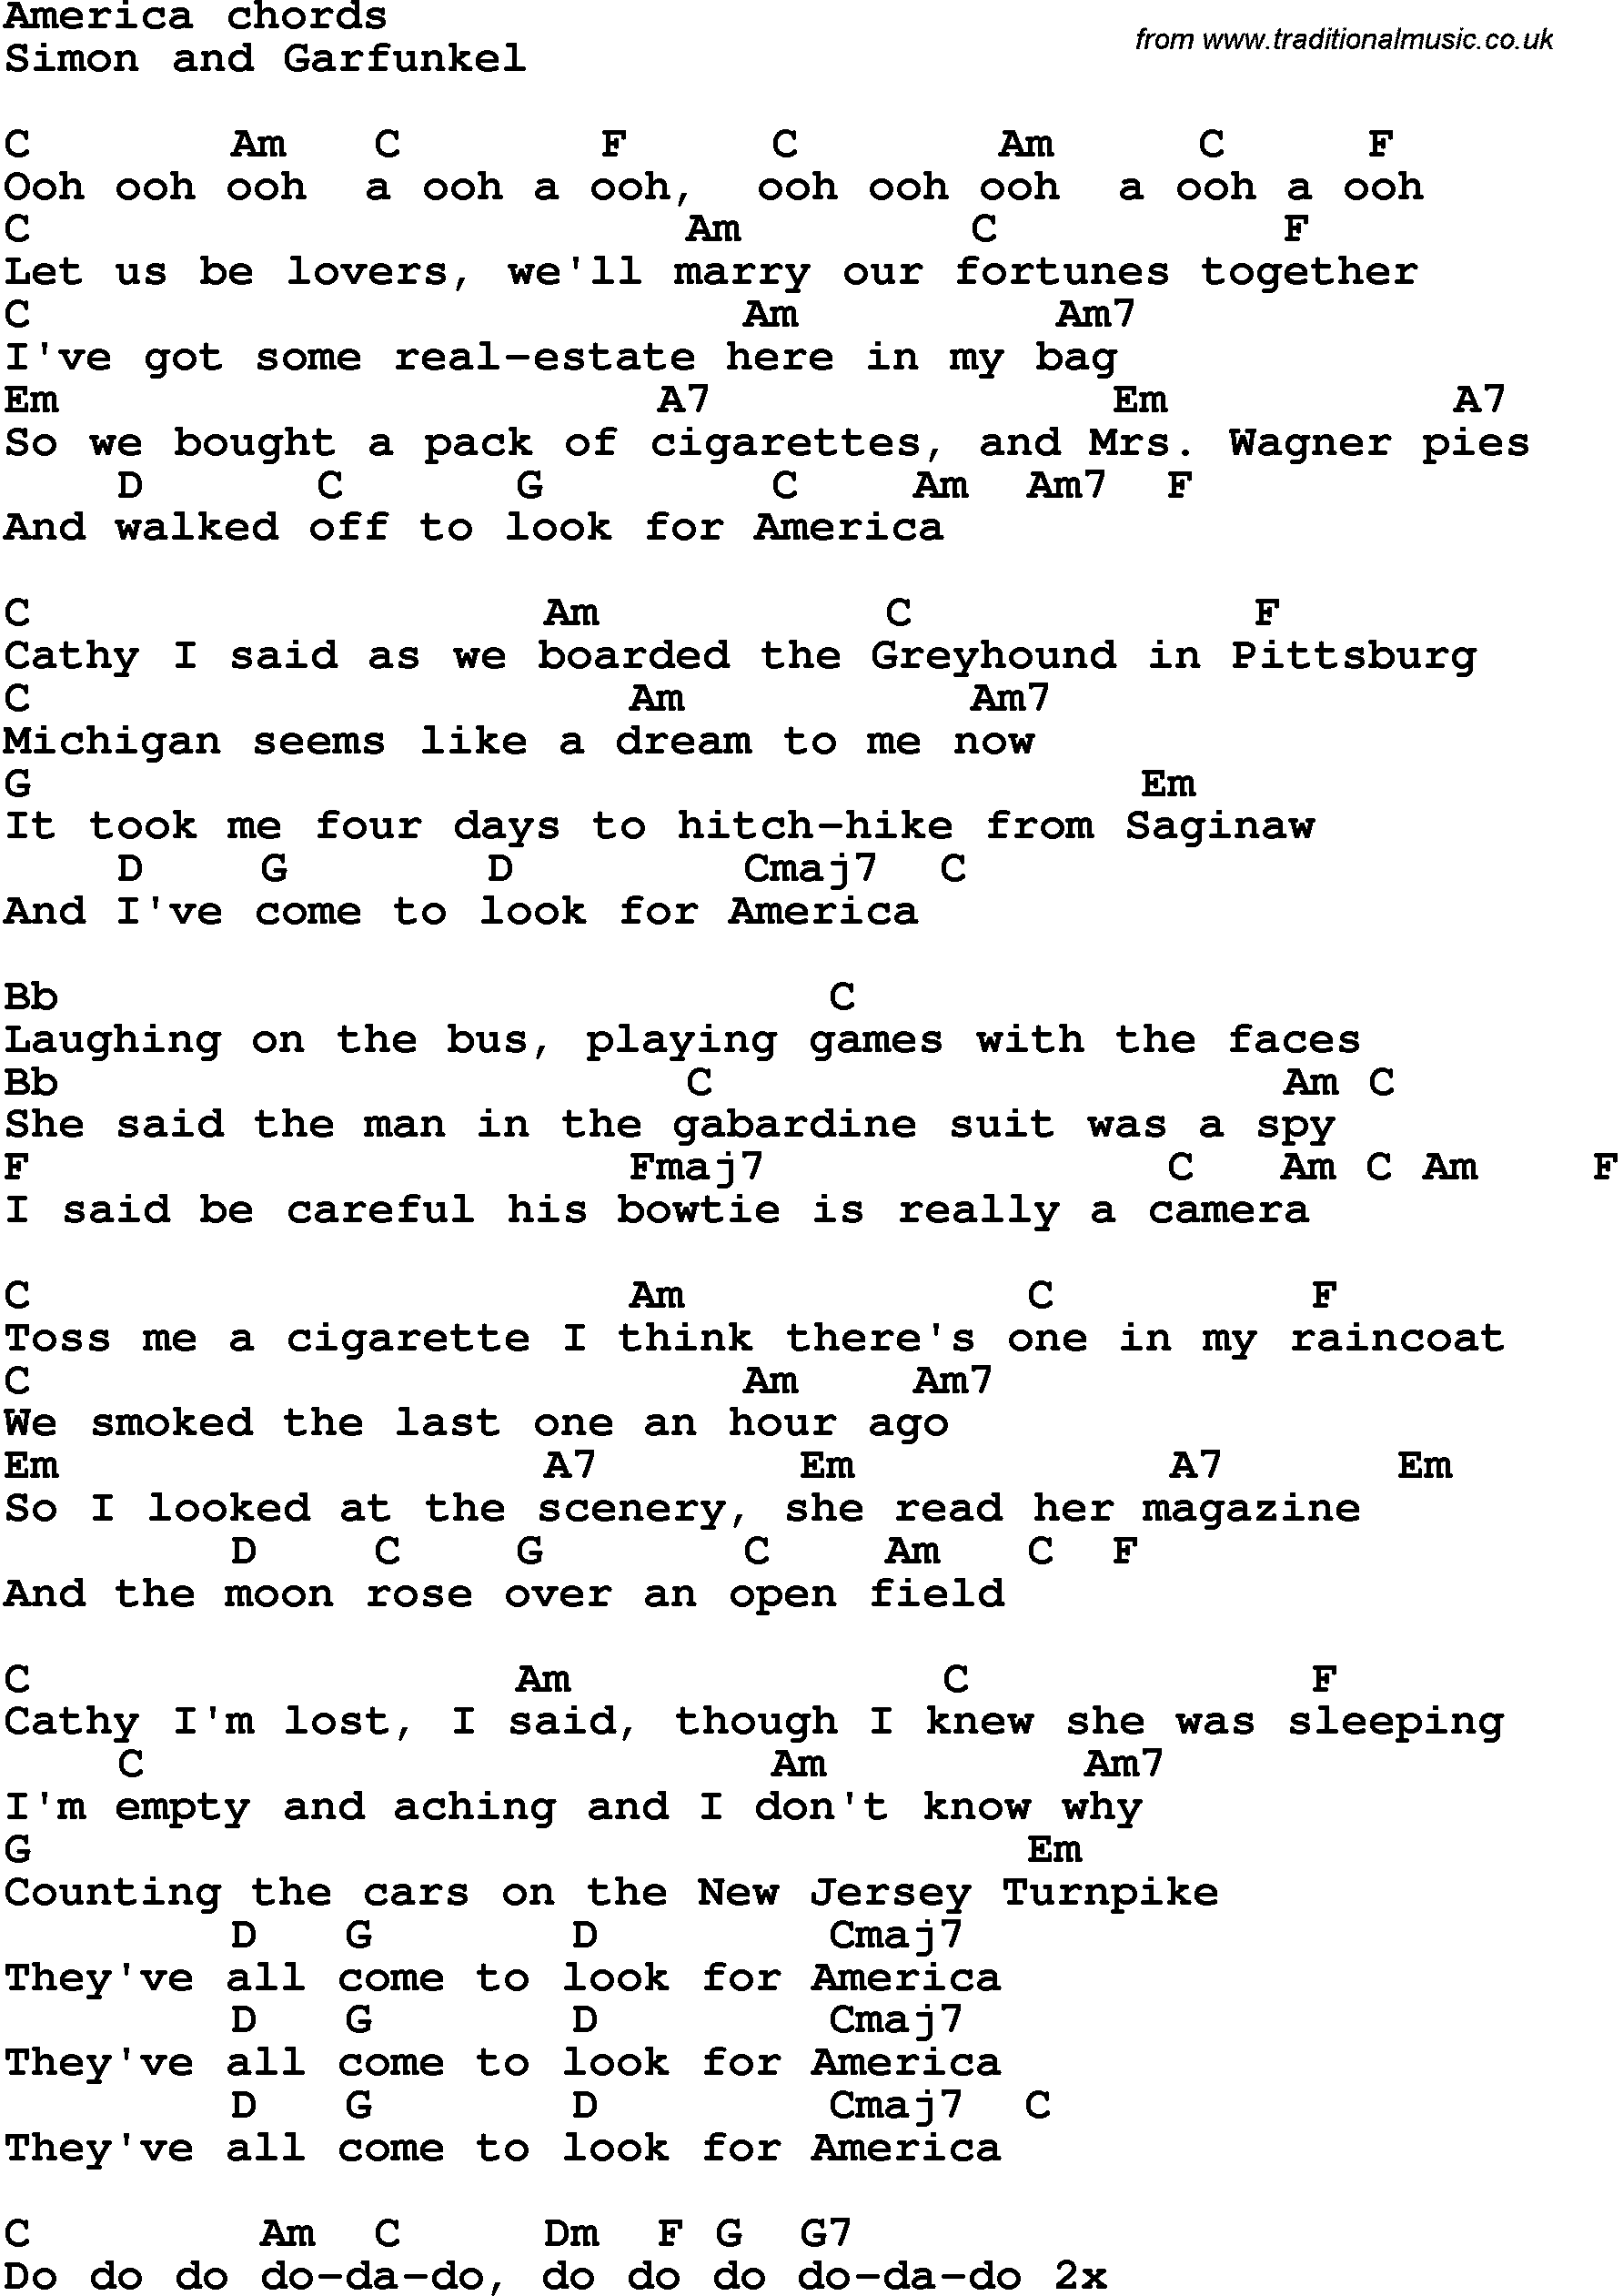 Simon and garfunkel guitar chords